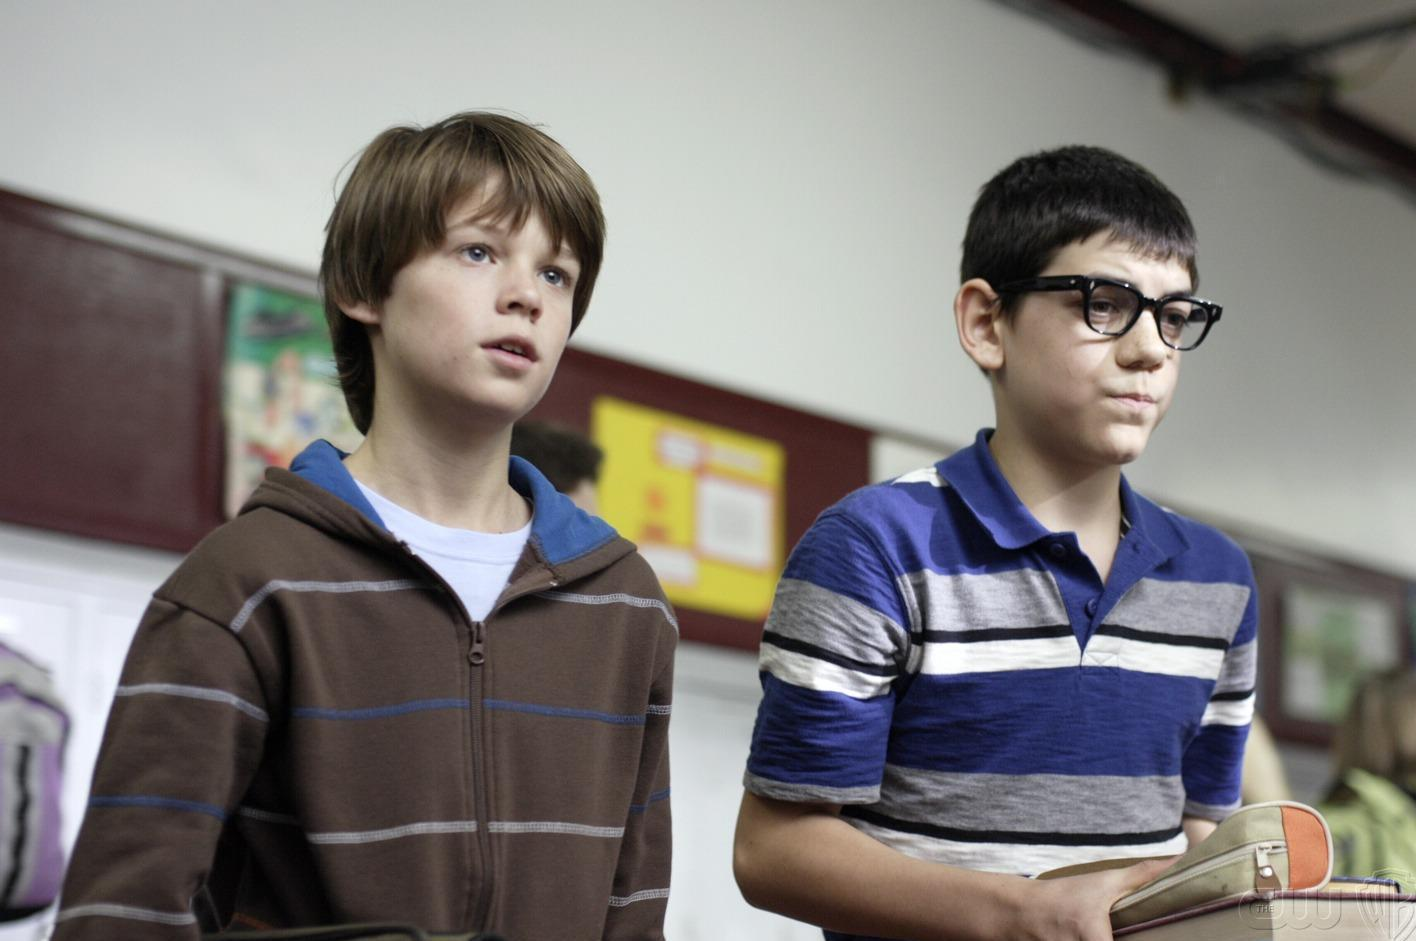 Demian Graham Colin-Ford-After-School-Special-Stills-the-weechesters-14396102-1416-941